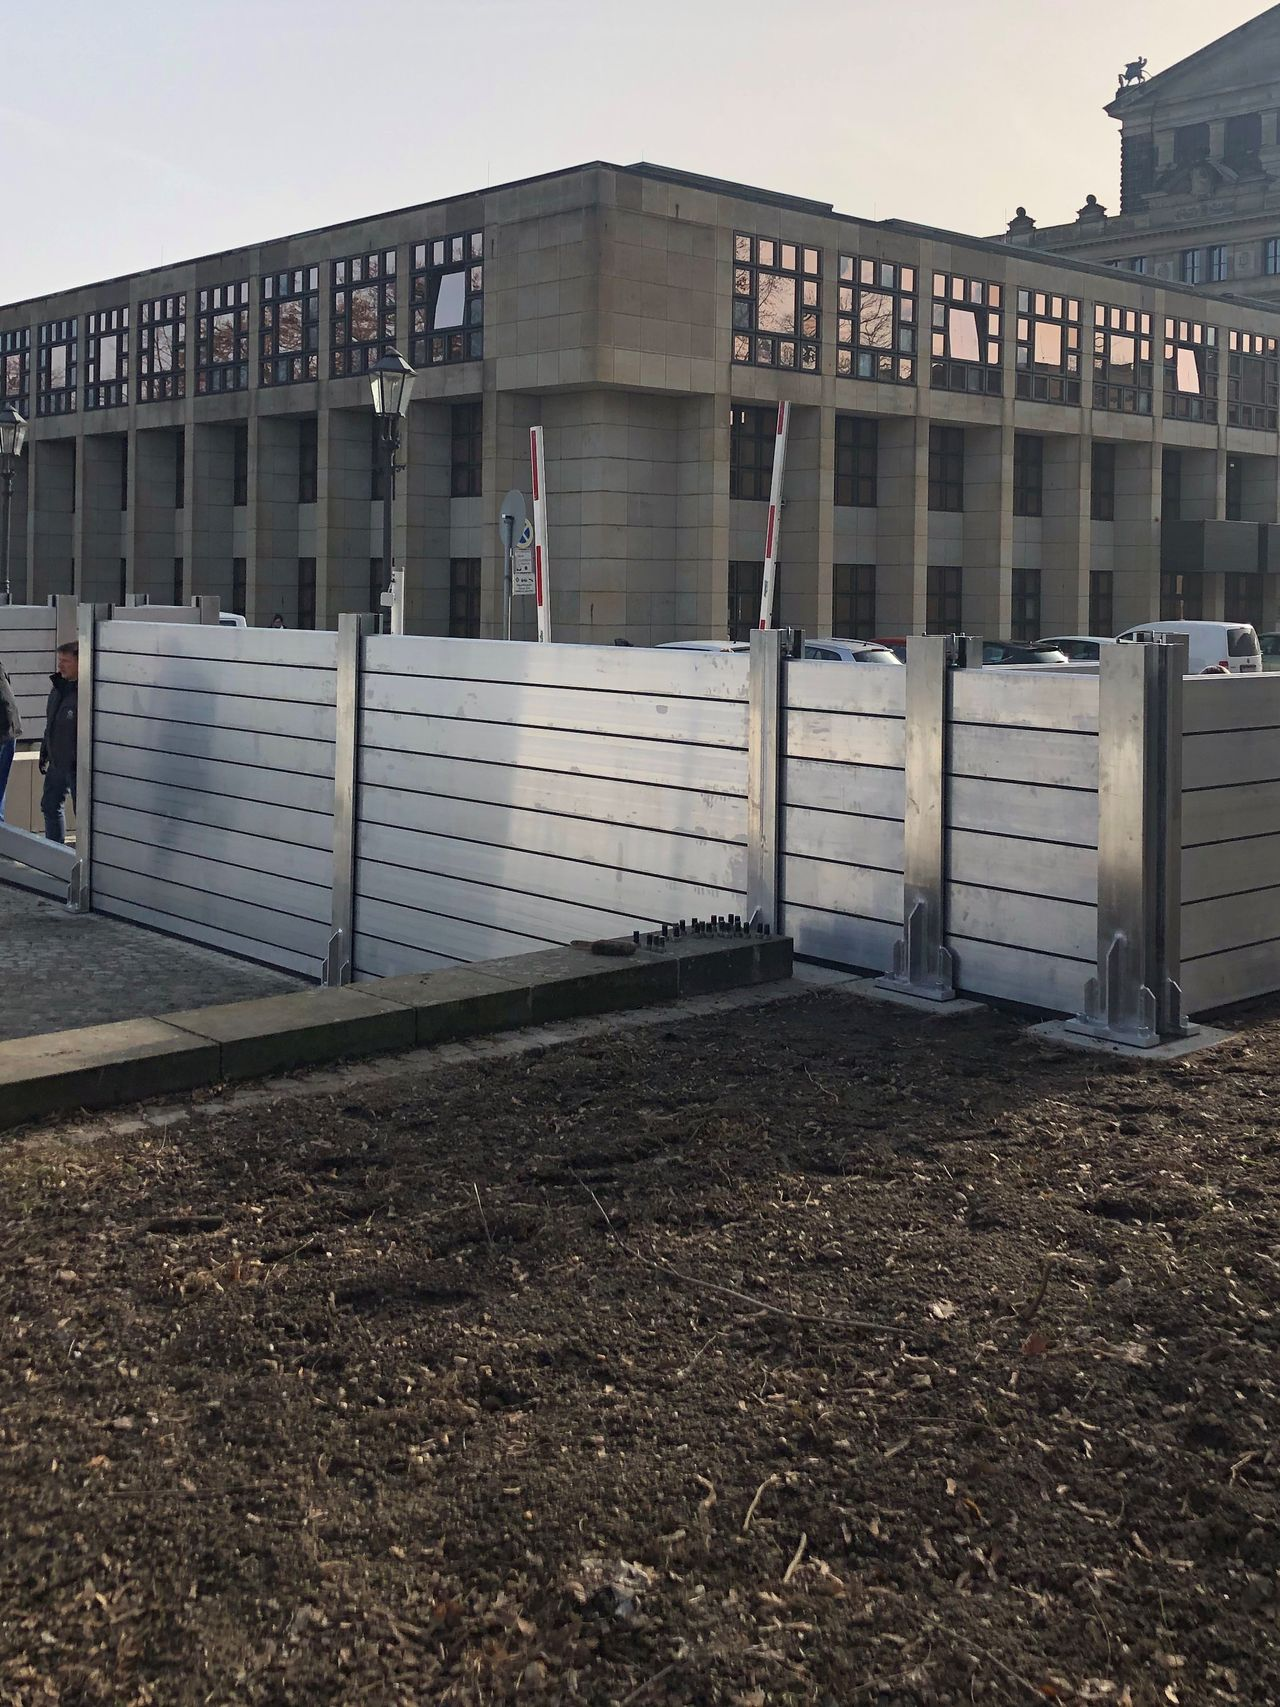 Reference flood Protection, Semper Opera Dresden